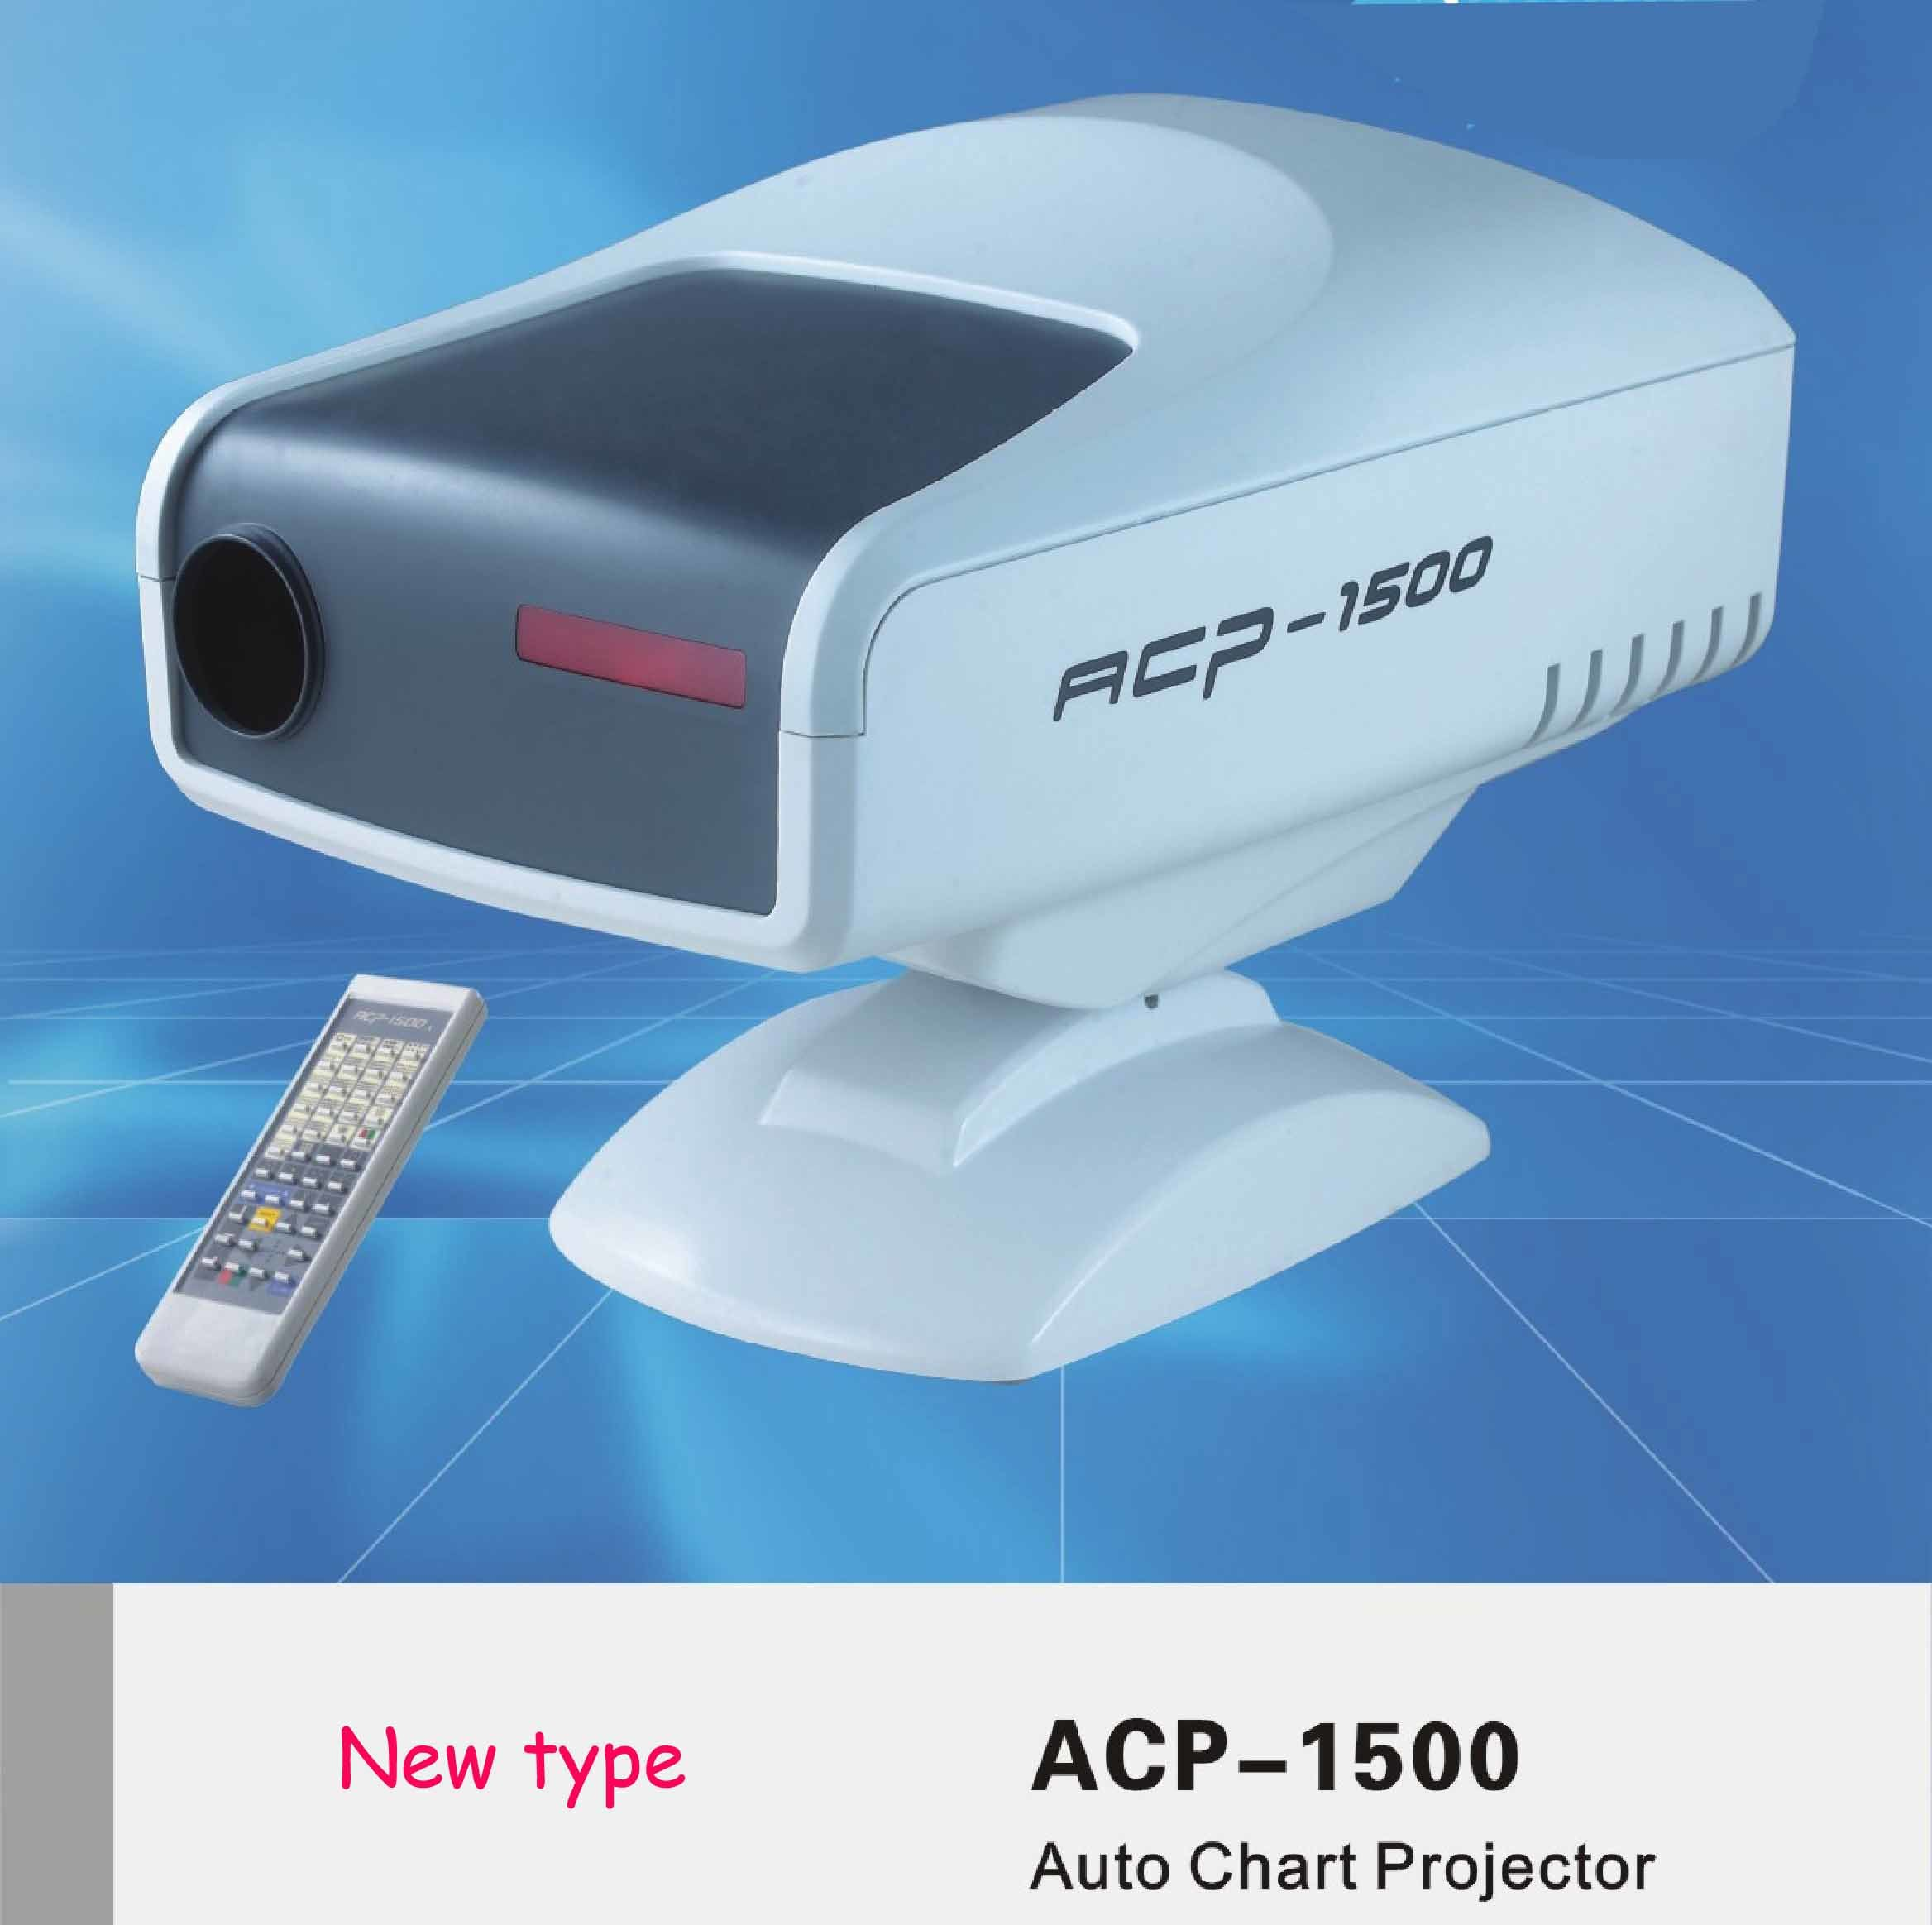 China auto chart projector projector price acp 1500 china china auto chart projector projector price acp 1500 china auto chart projector auto chart projector price nvjuhfo Choice Image